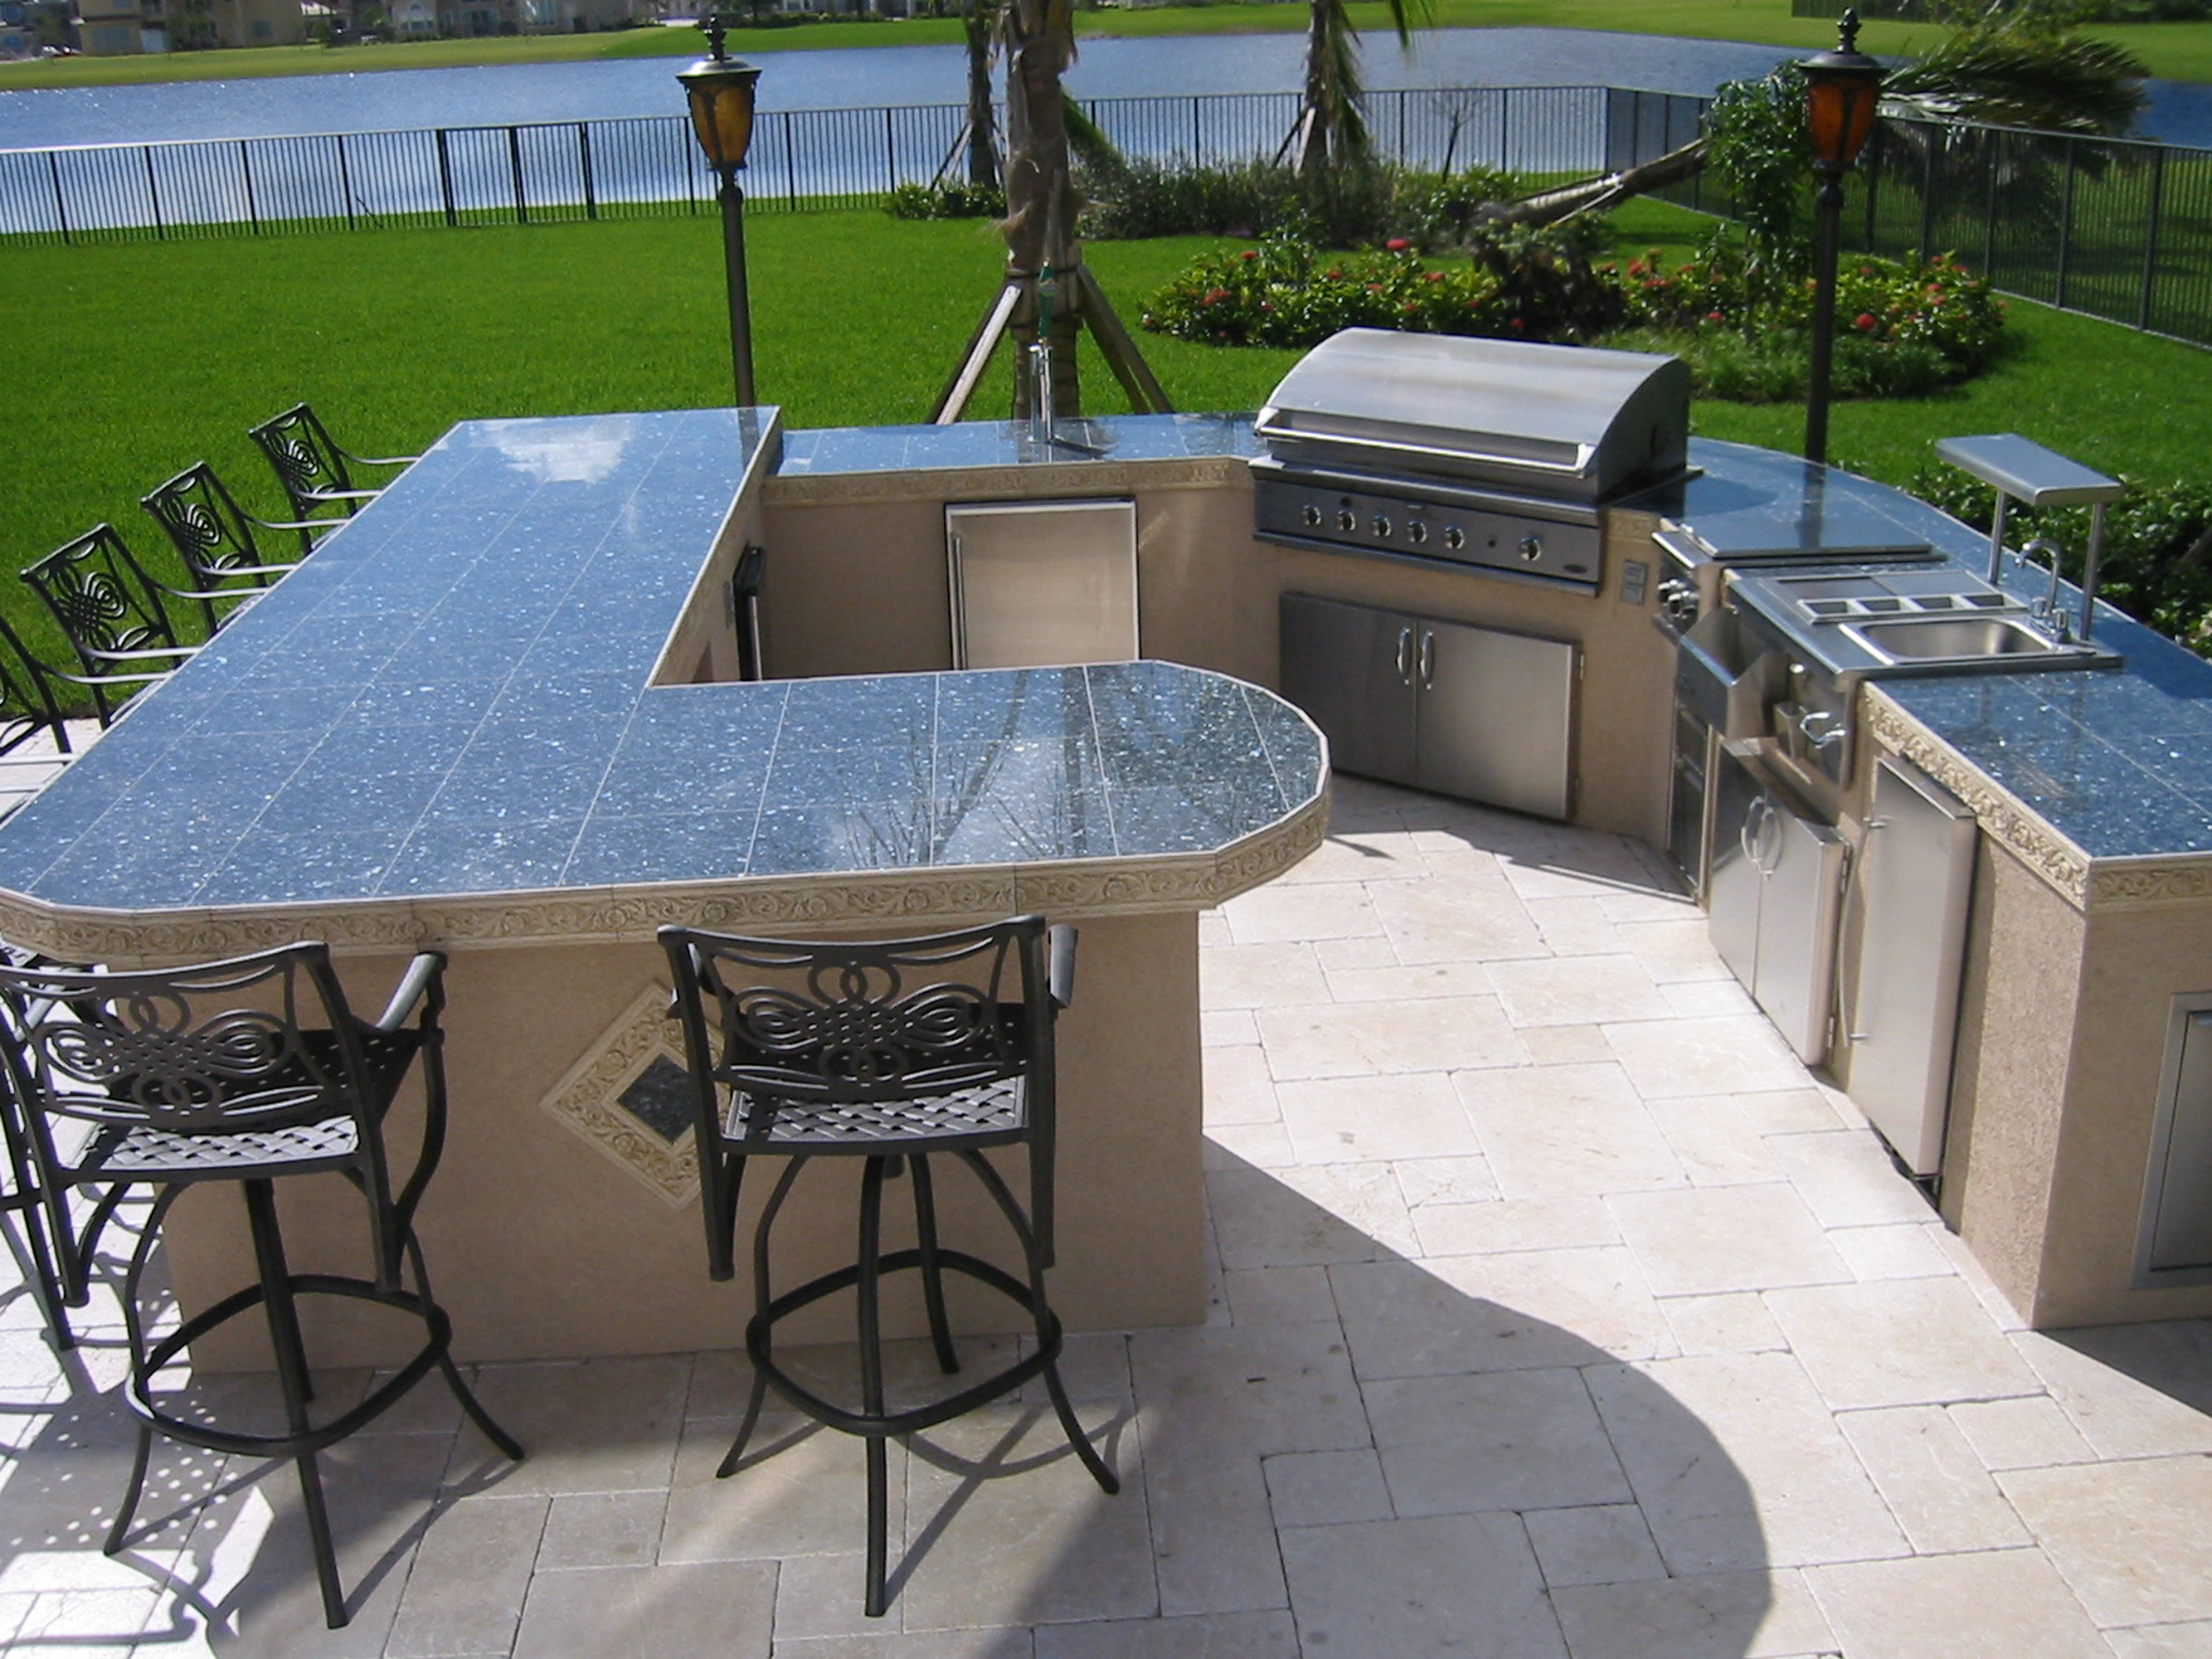 Outdoor Kitchen BBQ Grills | 2667 x 2000 · 2572 kB · jpeg | 2667 x 2000 · 2572 kB · jpeg